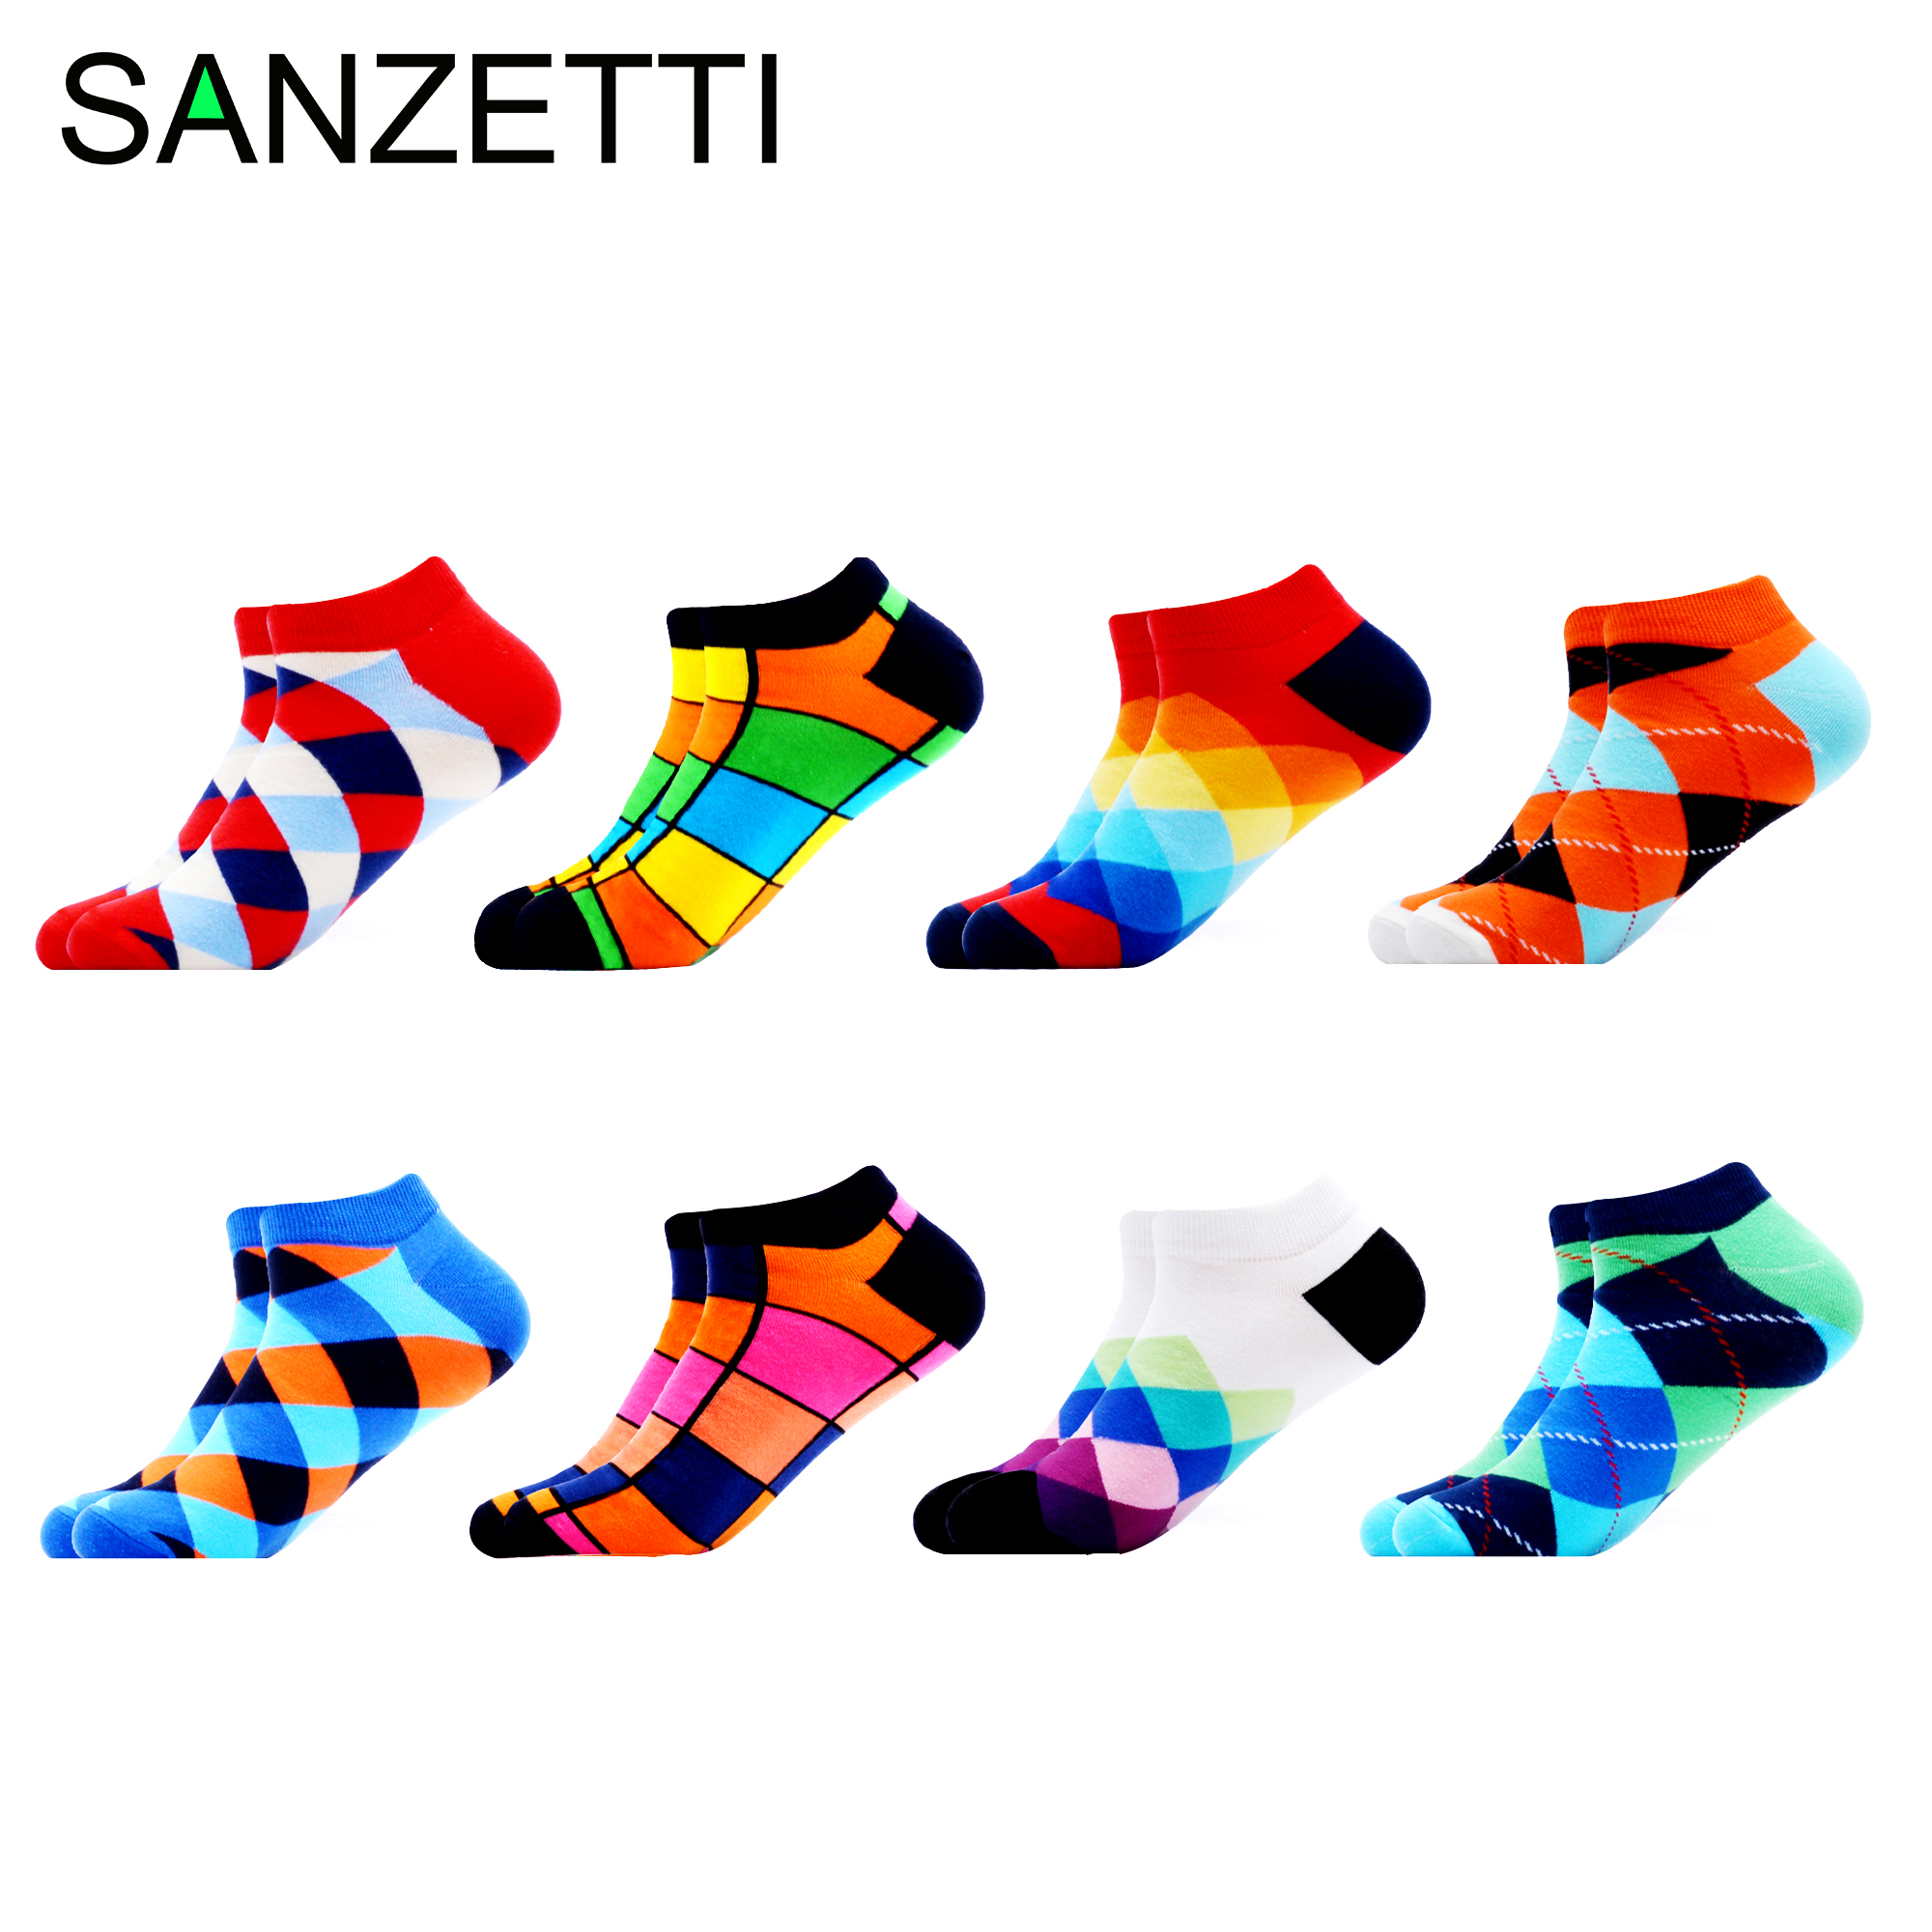 SANZETTI 8 Pairs/Lot Men Summer Casual Combed Short Socks Colorful Happy Hip Hop Ankle Socks Pattern Painting Plaid Boat Socks